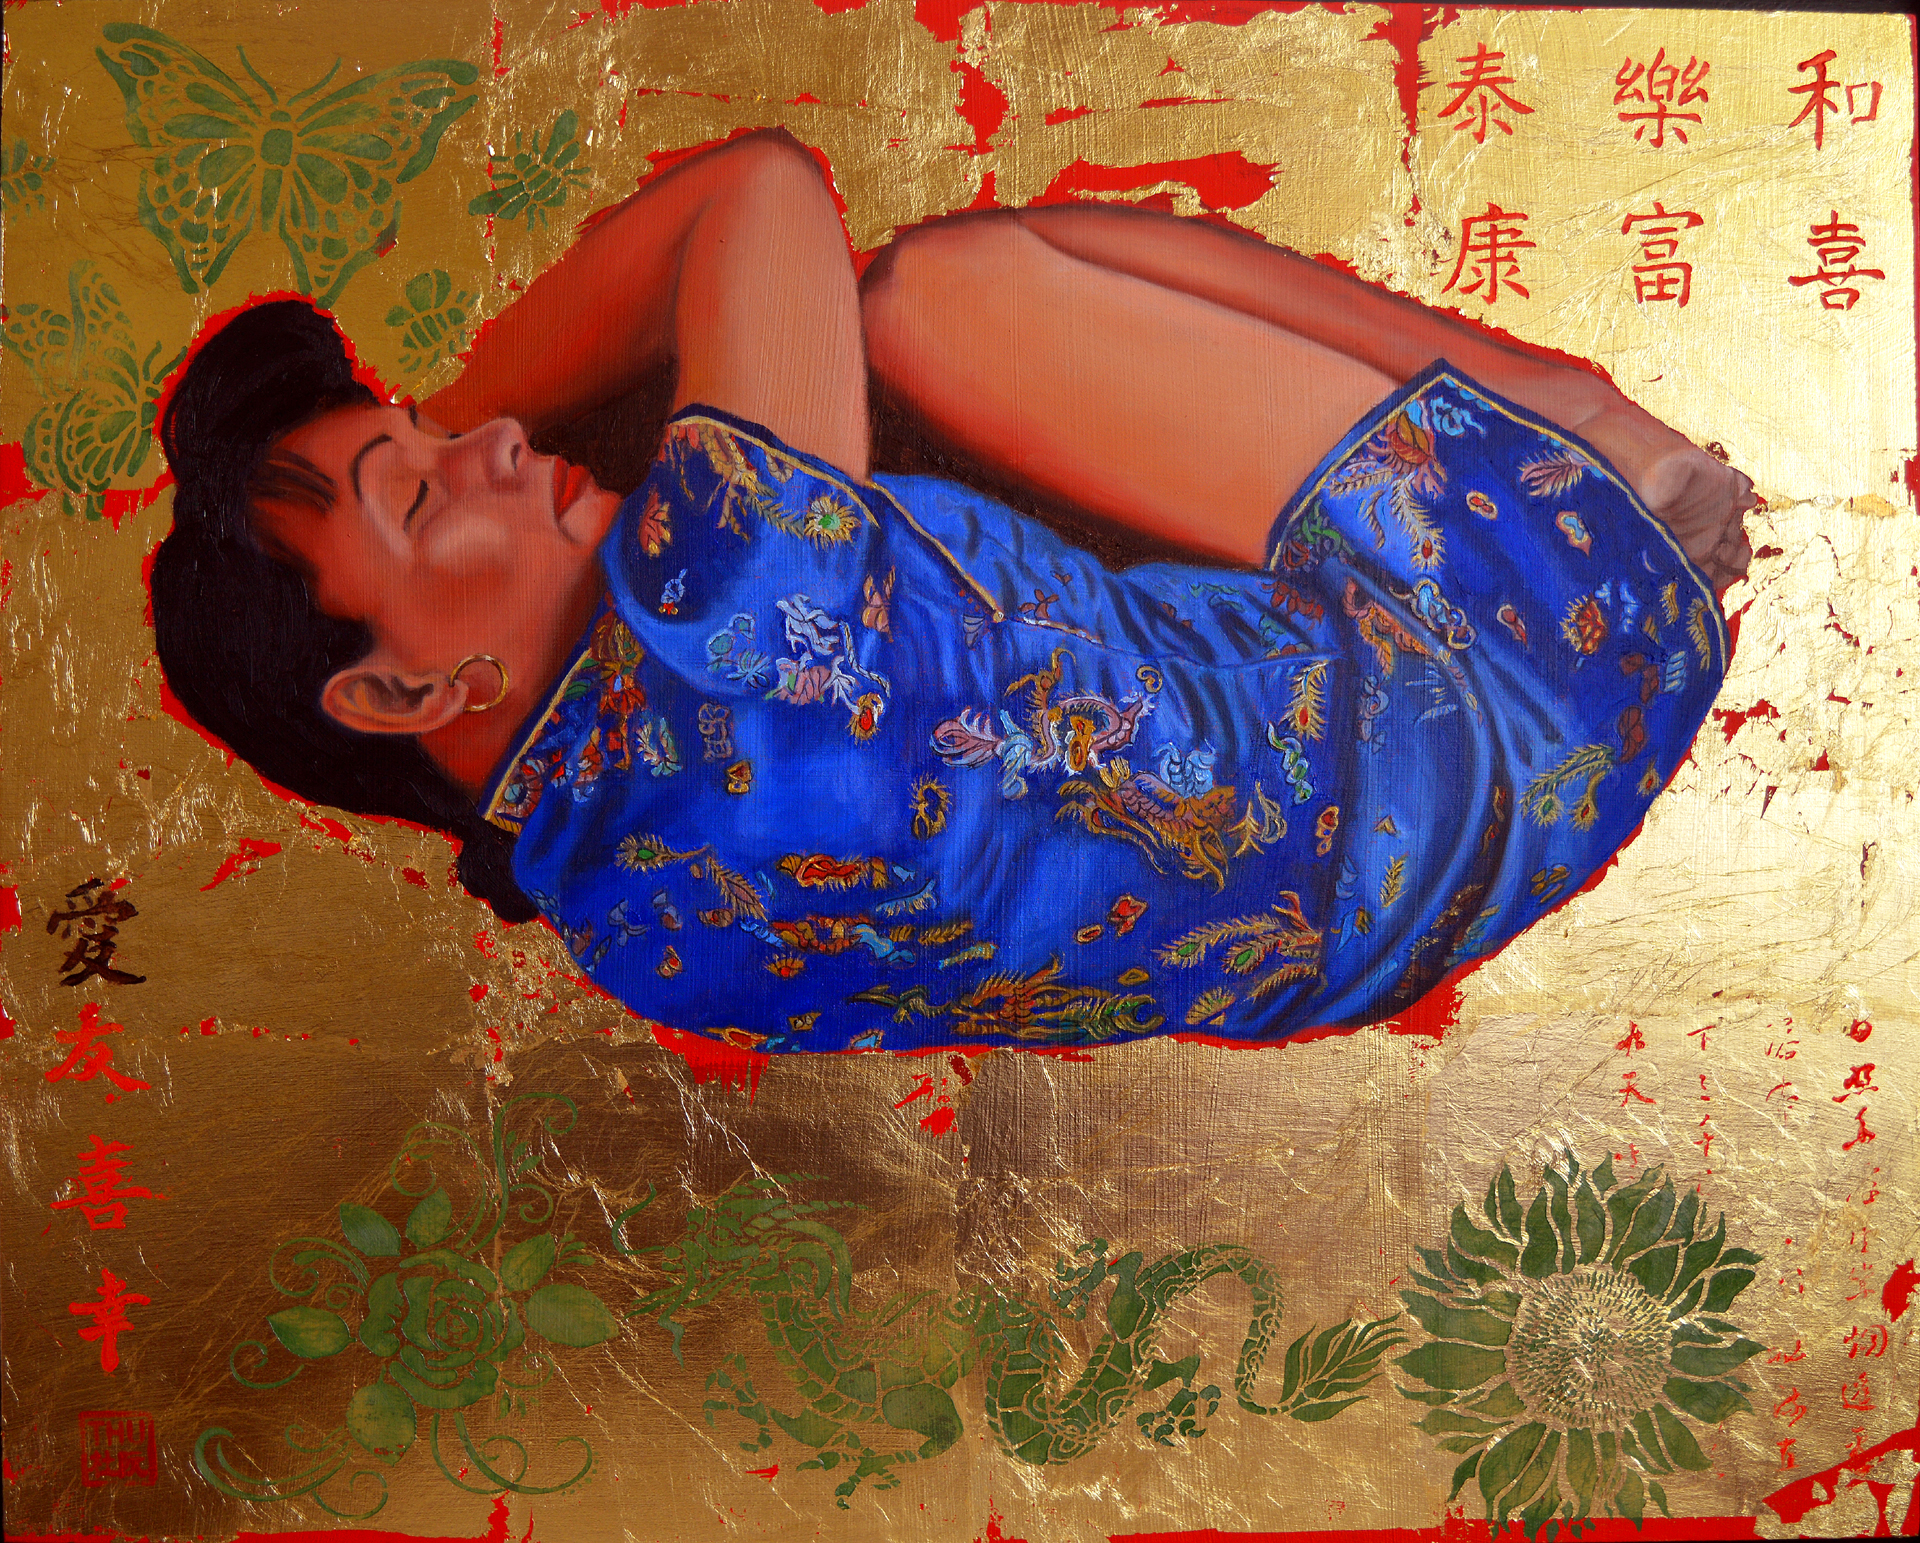 Thu Nguyen; The Dream, 2019, Original Painting Oil, 16 x 20 inches. Artwork description: 241 Painting with the image of a sleeping, crouching Chinese Woman. Medium- format painting with a combination of different materials and techniques - from relief acrylic to luxurious 24 kt gold leaf.Original painting  The Dream  by Thu NguyenPainting is created on a panel and has a relief. ...